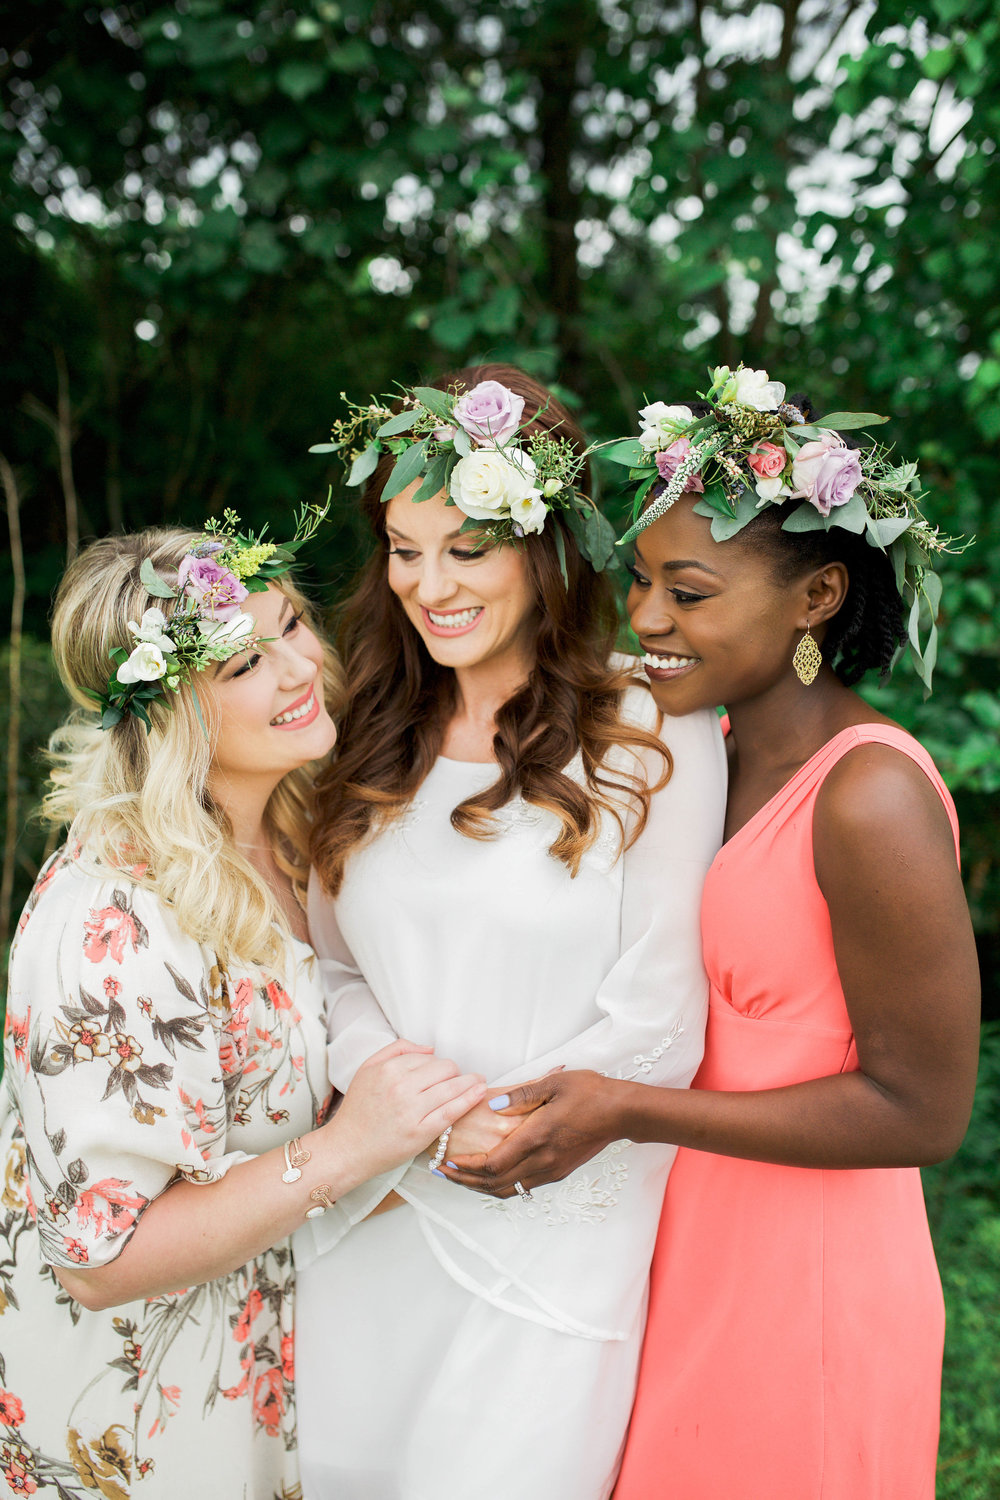 Bridal Shower Inspiration | Flower Crowns and Boozy Cocktails | Lavender and Lemons